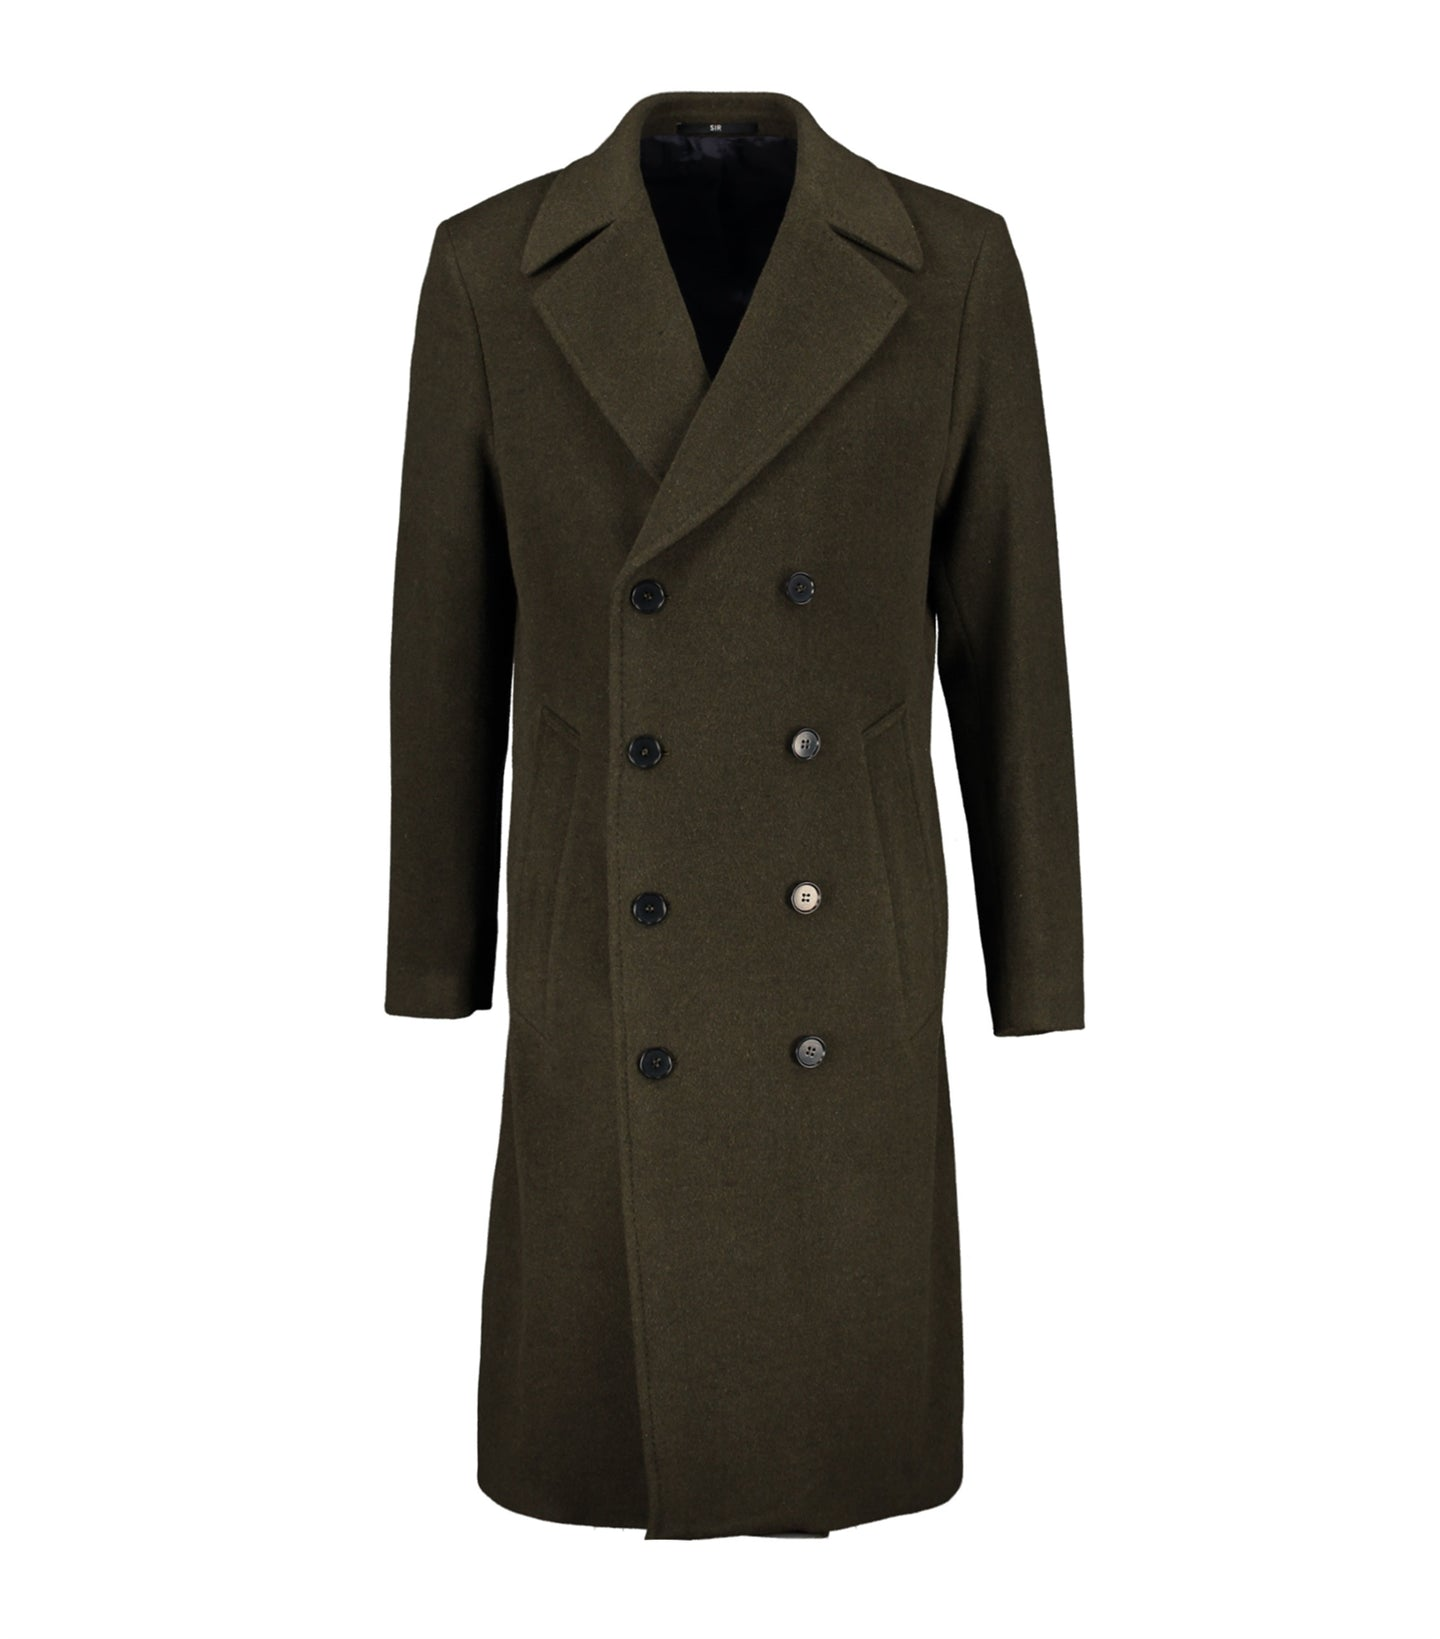 Spectre Green Double-Breasted Coat